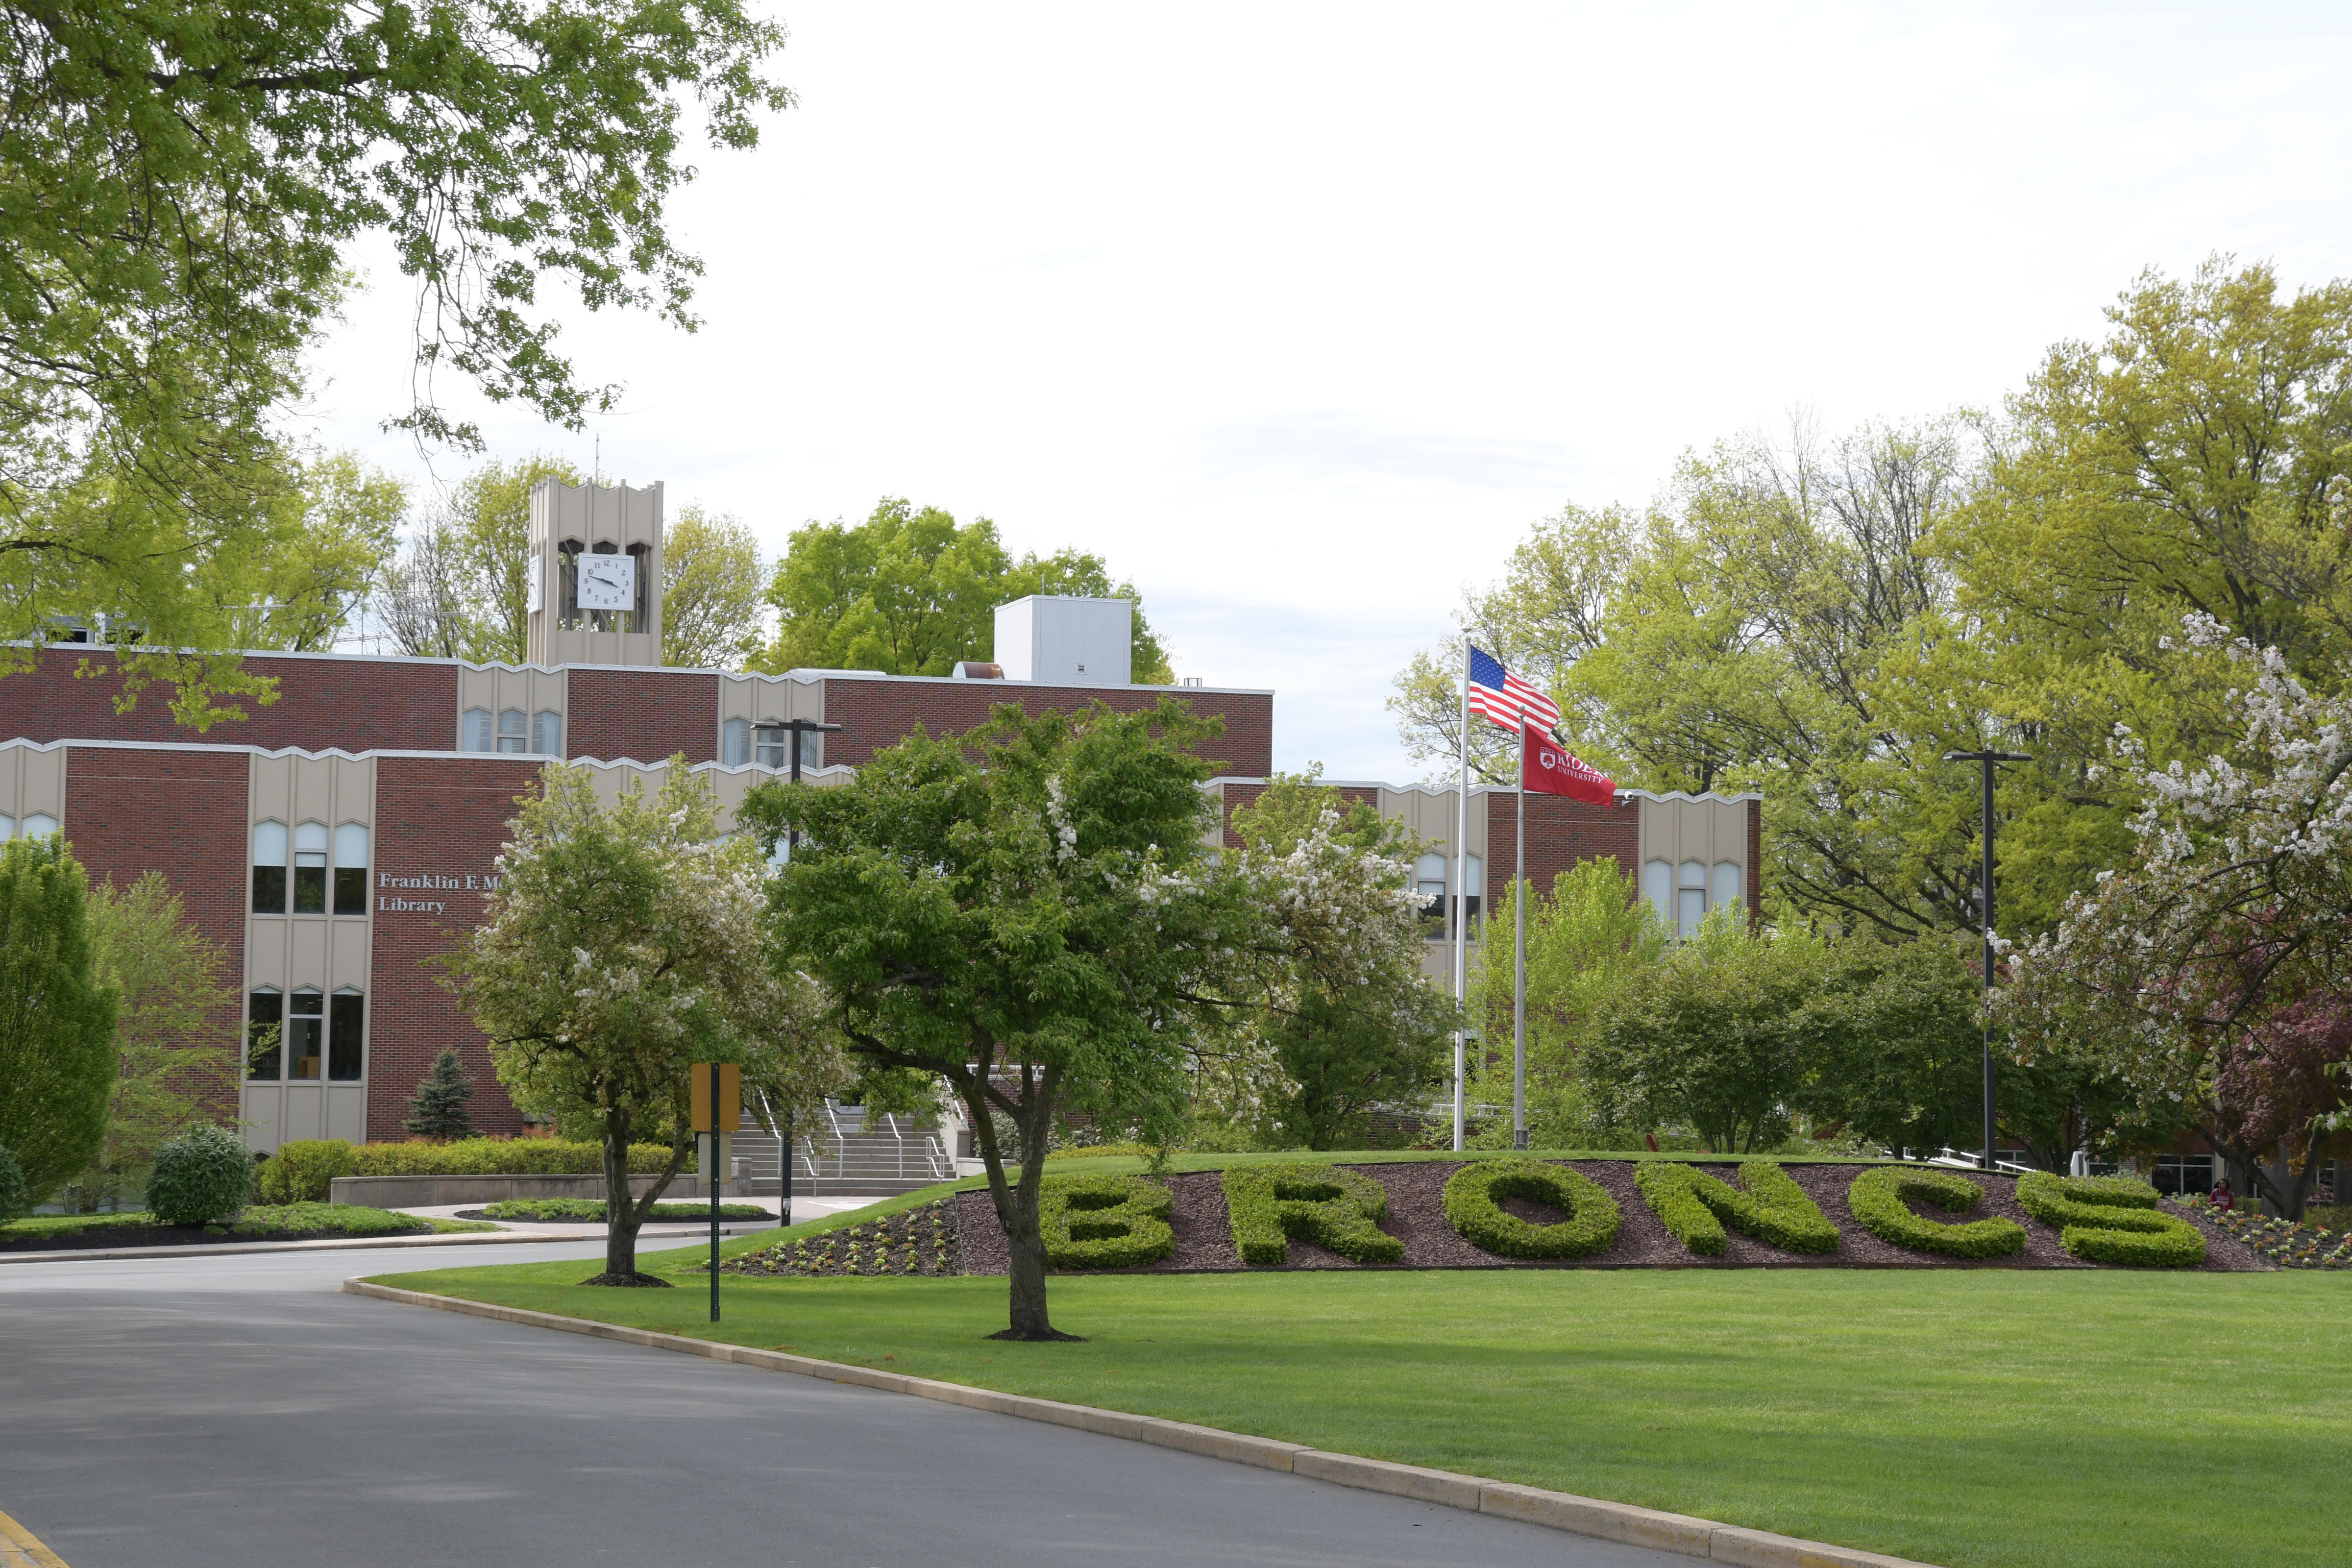 Campus mall in front of Moore Library